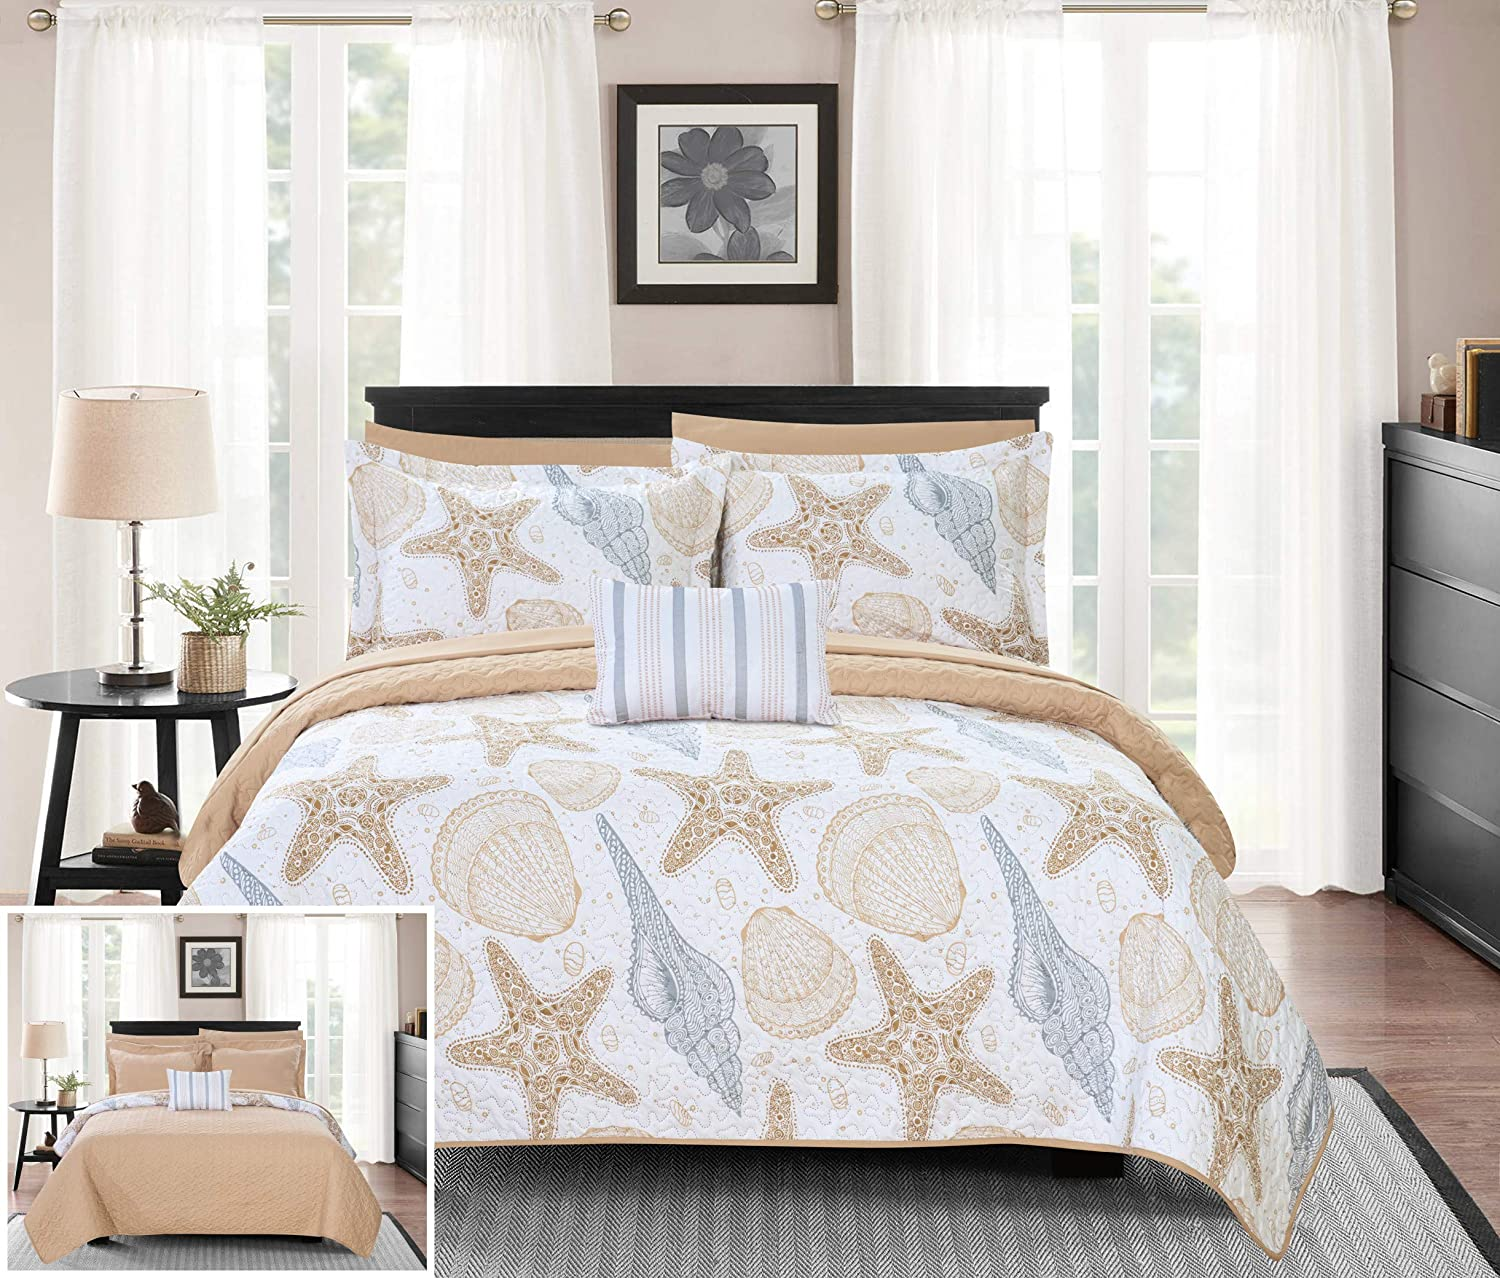 Chic Home Maritime 4 Piece Reversible Coverlet Set Life in The Sea Theme Embossed Quilted Design Bedding-Decorative Pillow Shams Included, King, Multi Color